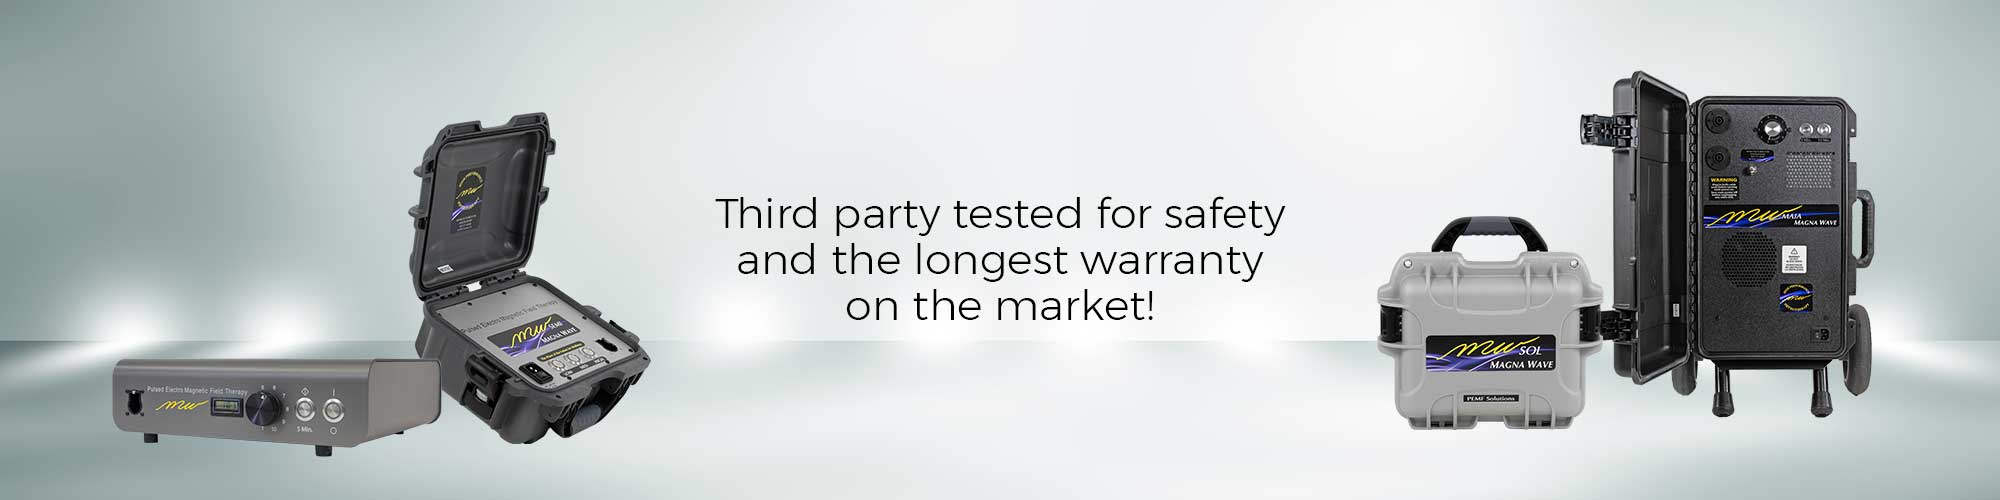 Third party tested for safety and the longest warranty on the market!